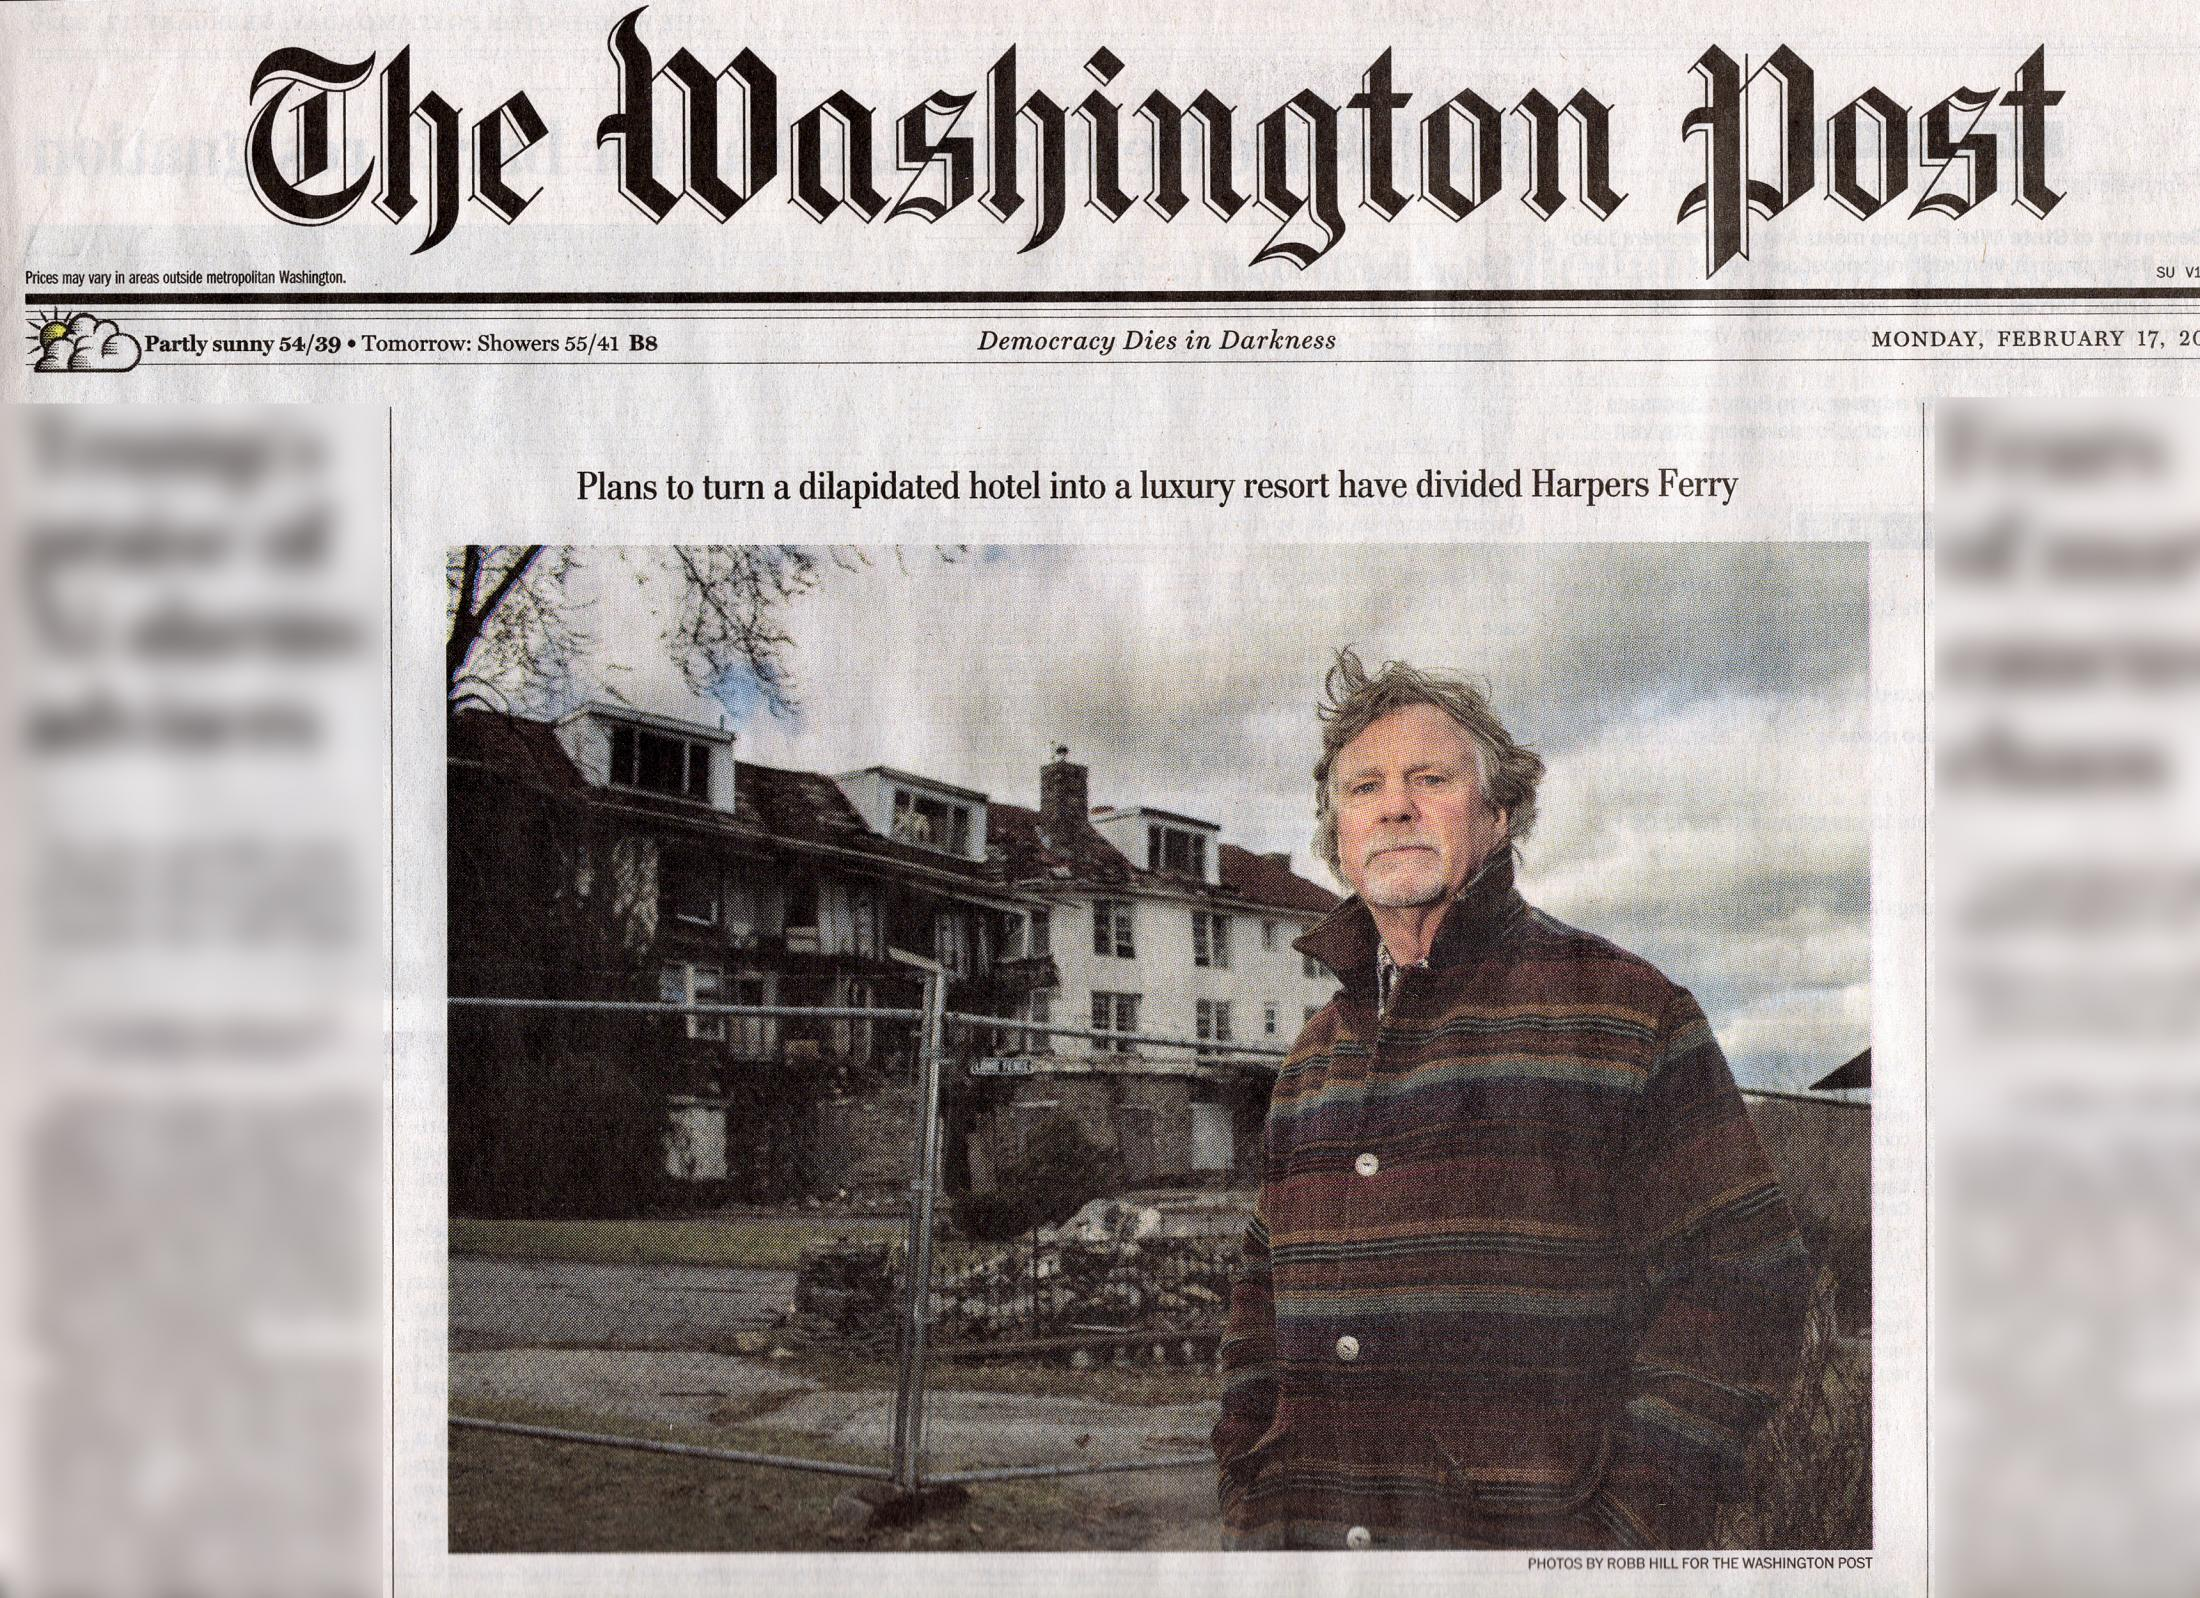 HARPERS FERRY, WV - FEBRUARY 7: Harpers Ferry Mayor Wayne Bishop in front of the remains of the current Hilltop House Hotel. How to redevelop the site has caused a great deal of controversy in the town. (Photo by Robb Hill for The Washington Post)